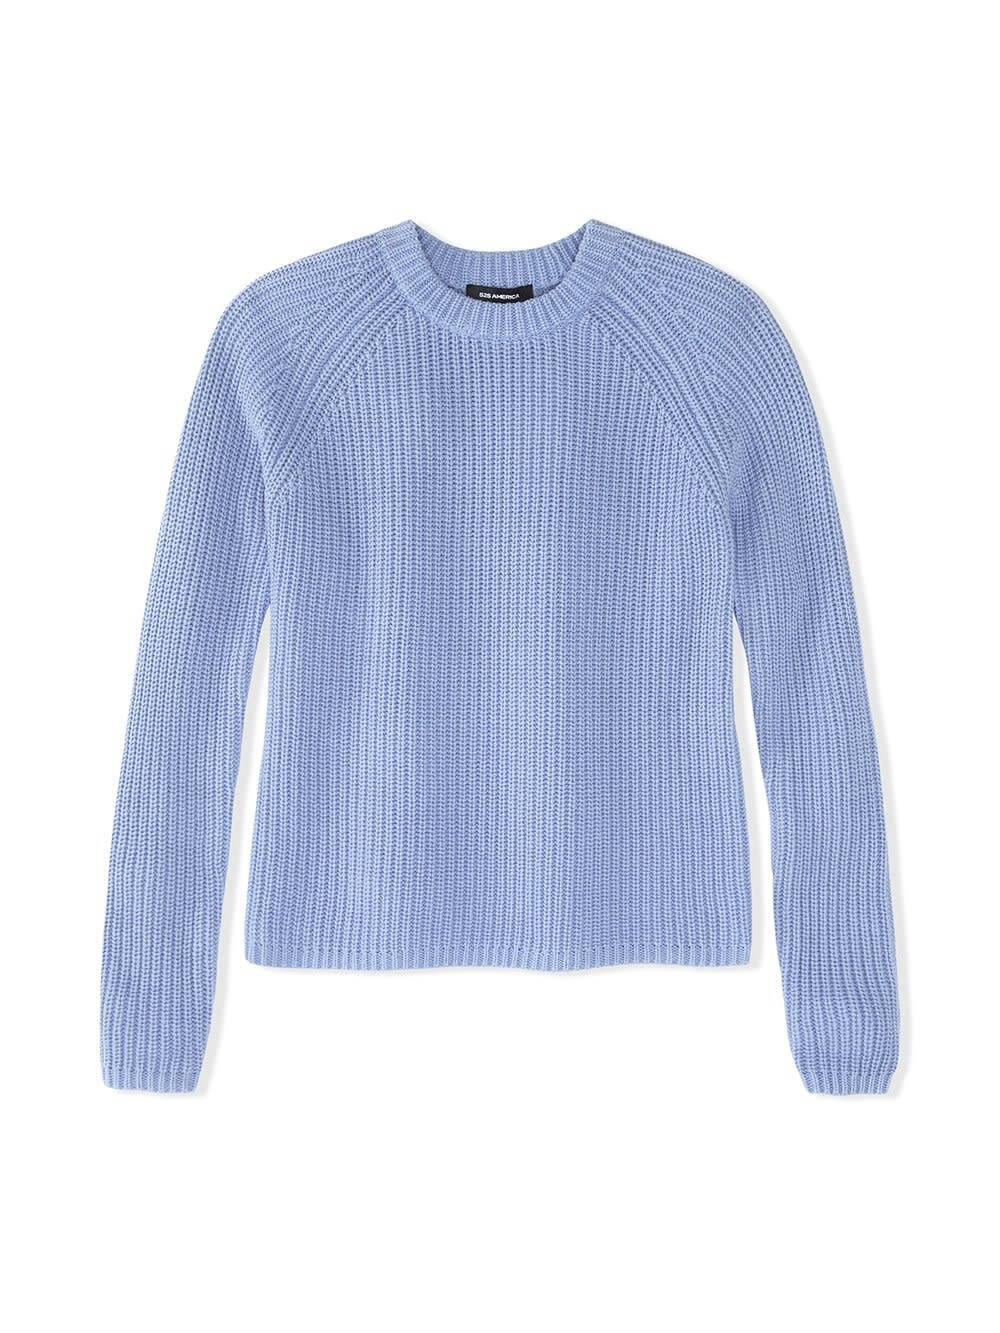 525 America Chalk Blue Shaker Pullover Sweater